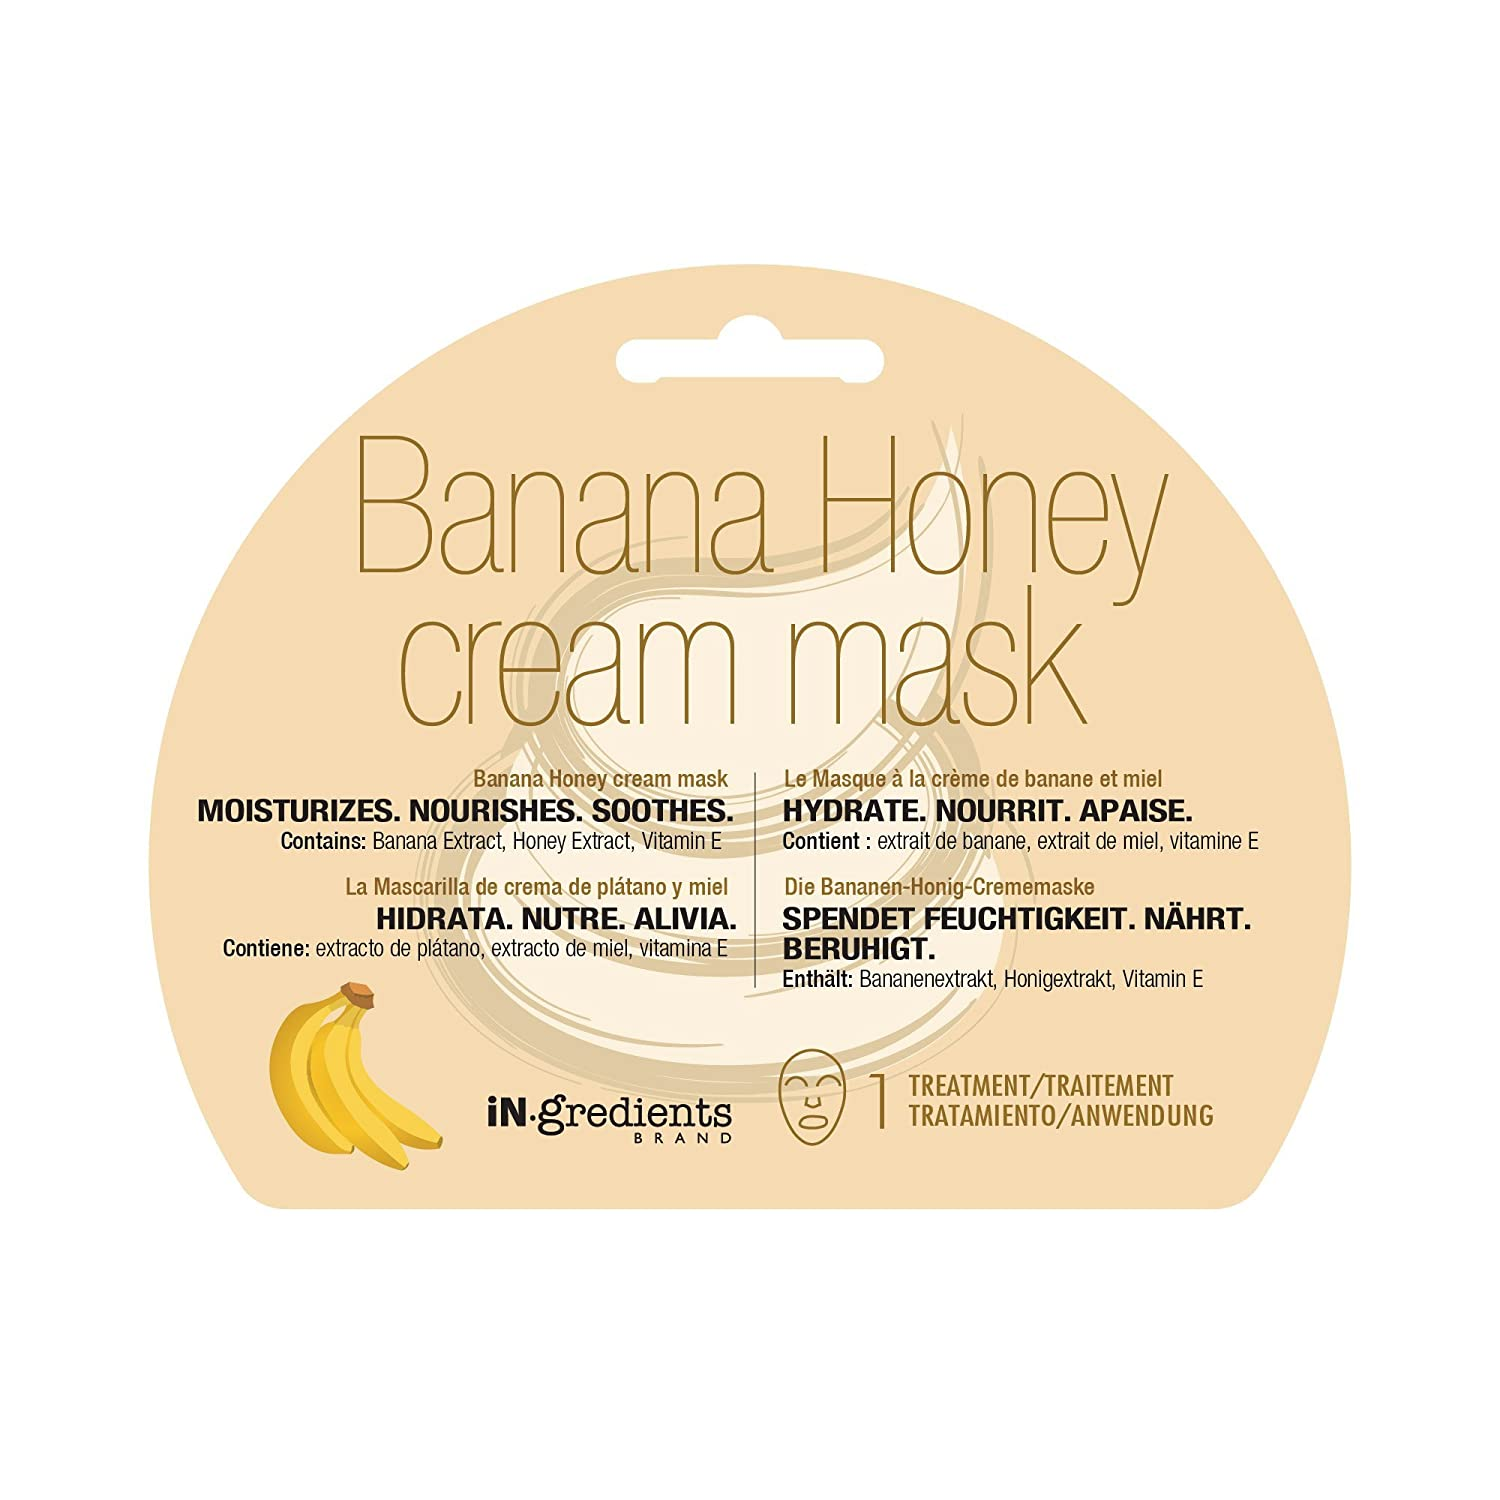 Amazon.com : iN.gredients Banana Honey Cream Mask - Moisturizing, Cleansing, Exfoliating Pore Refiner for Dehydrated, Sensitive Skin - Made in Korea : ...